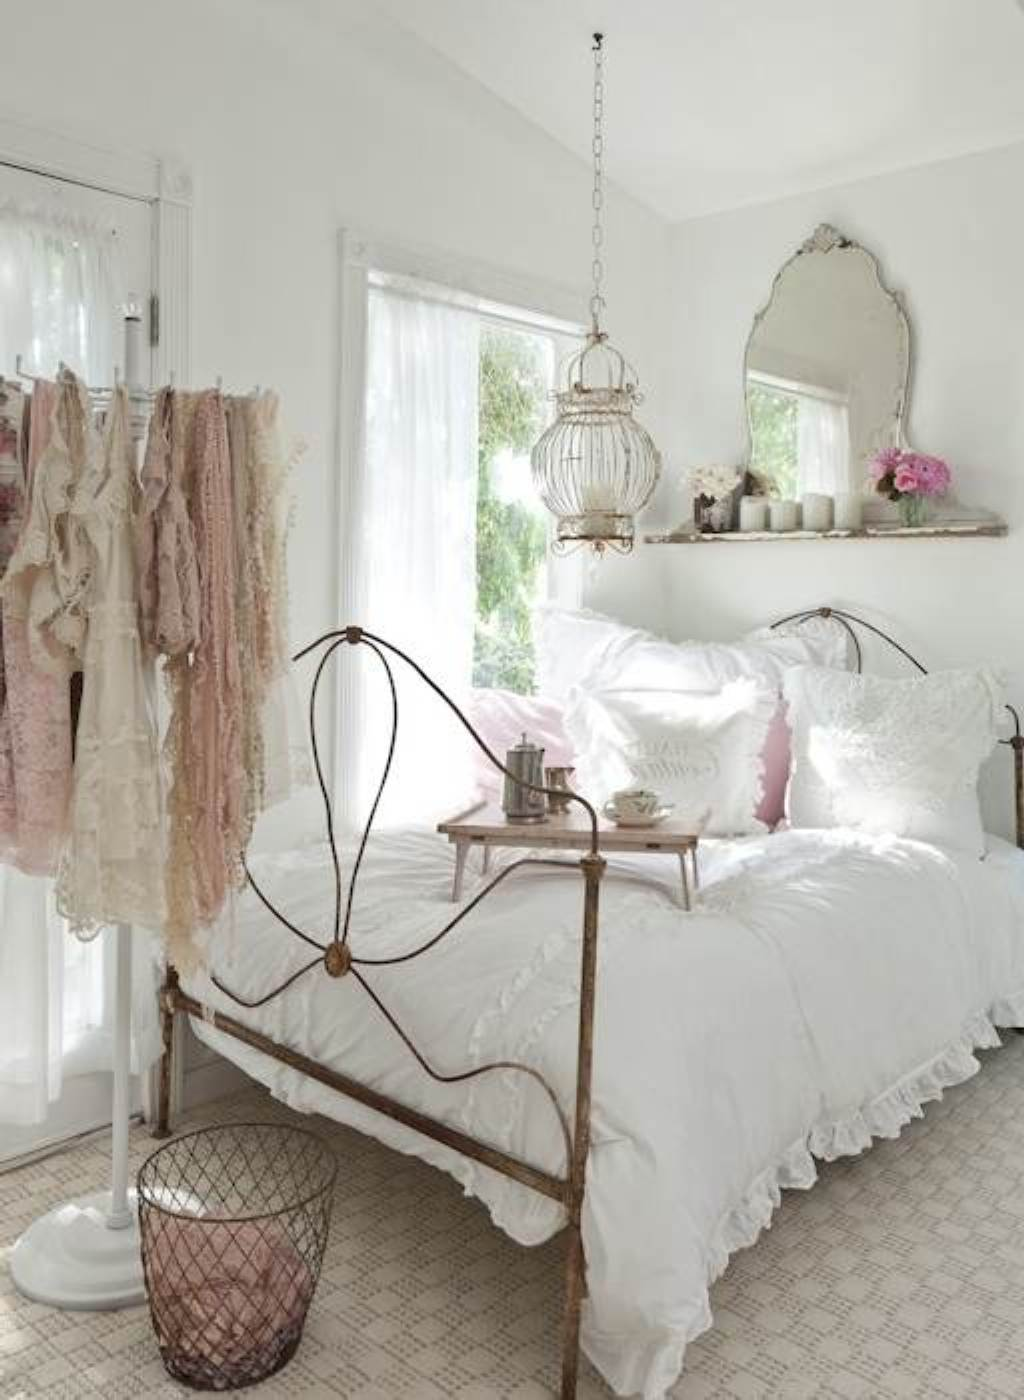 ... Bohemian Bedroom Interiors Idea Beautiful Vintage Bedroom Decor ...